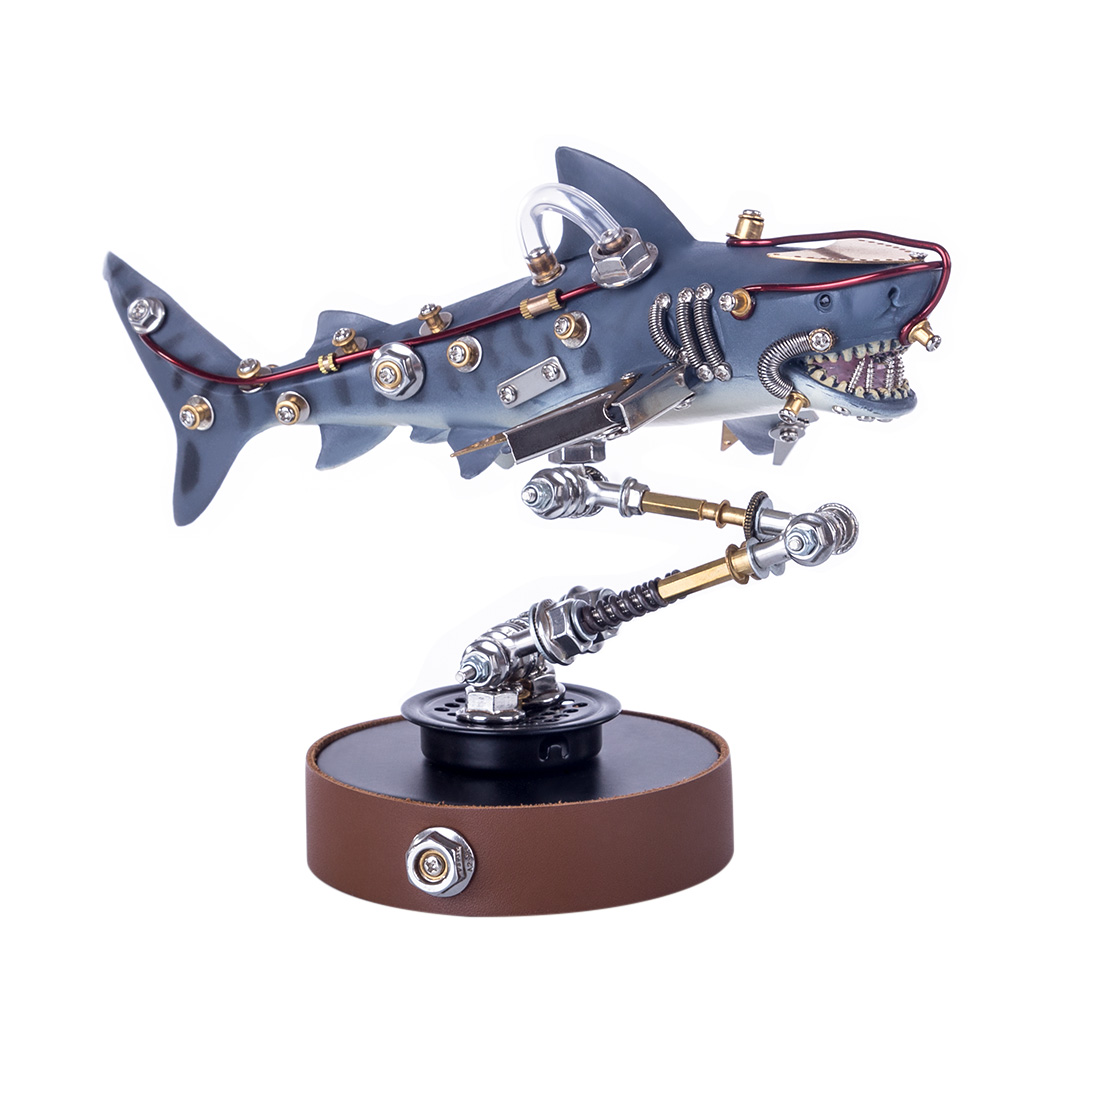 Mechanical Shark 3D Puzzle 217Pcs DIY Metal Variant Beast Assembly Model Kit